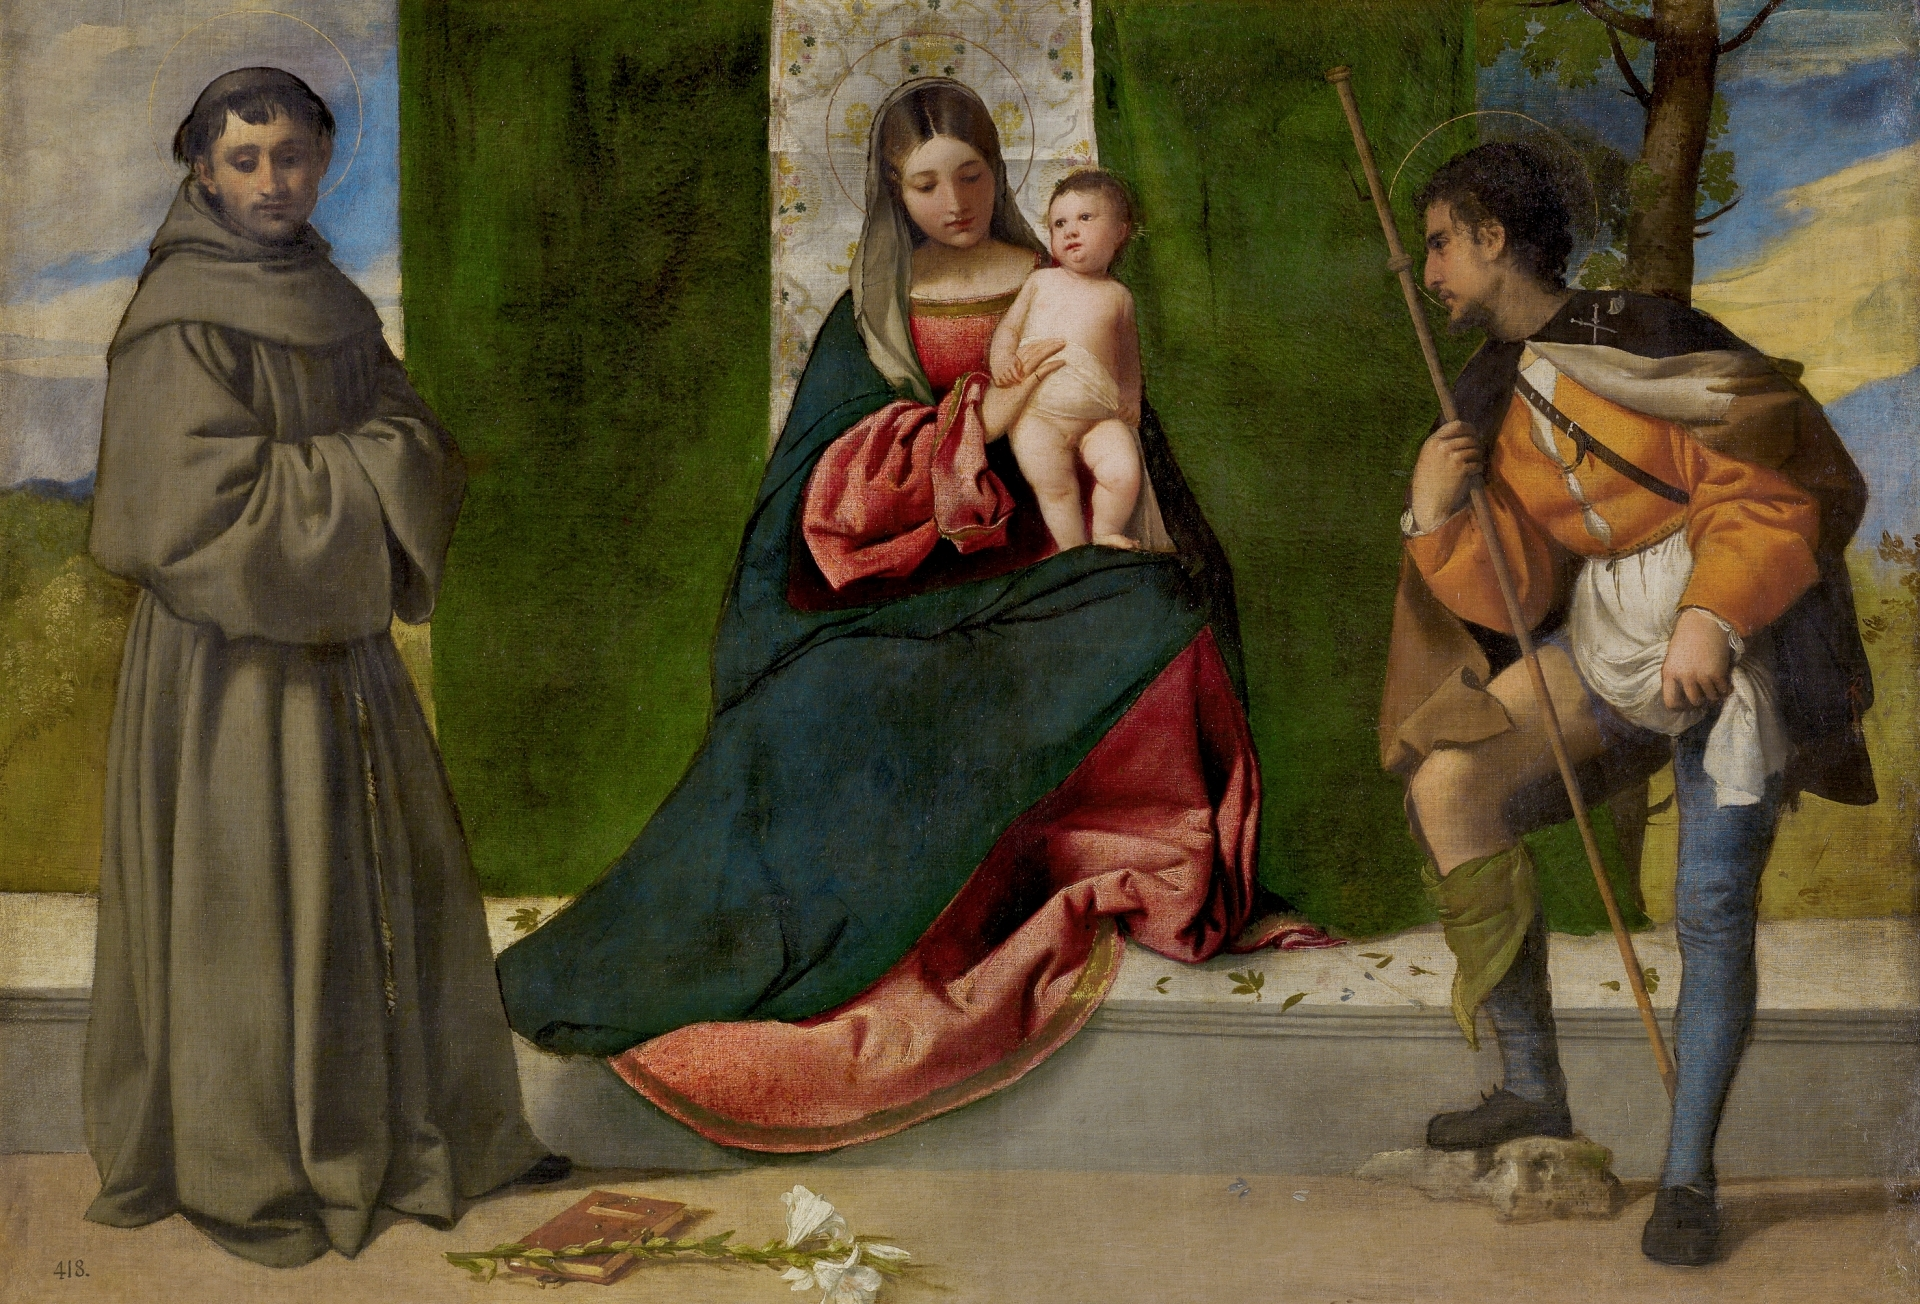 In Arte Nino 2016 the virgin and child between saints anthony of padua and